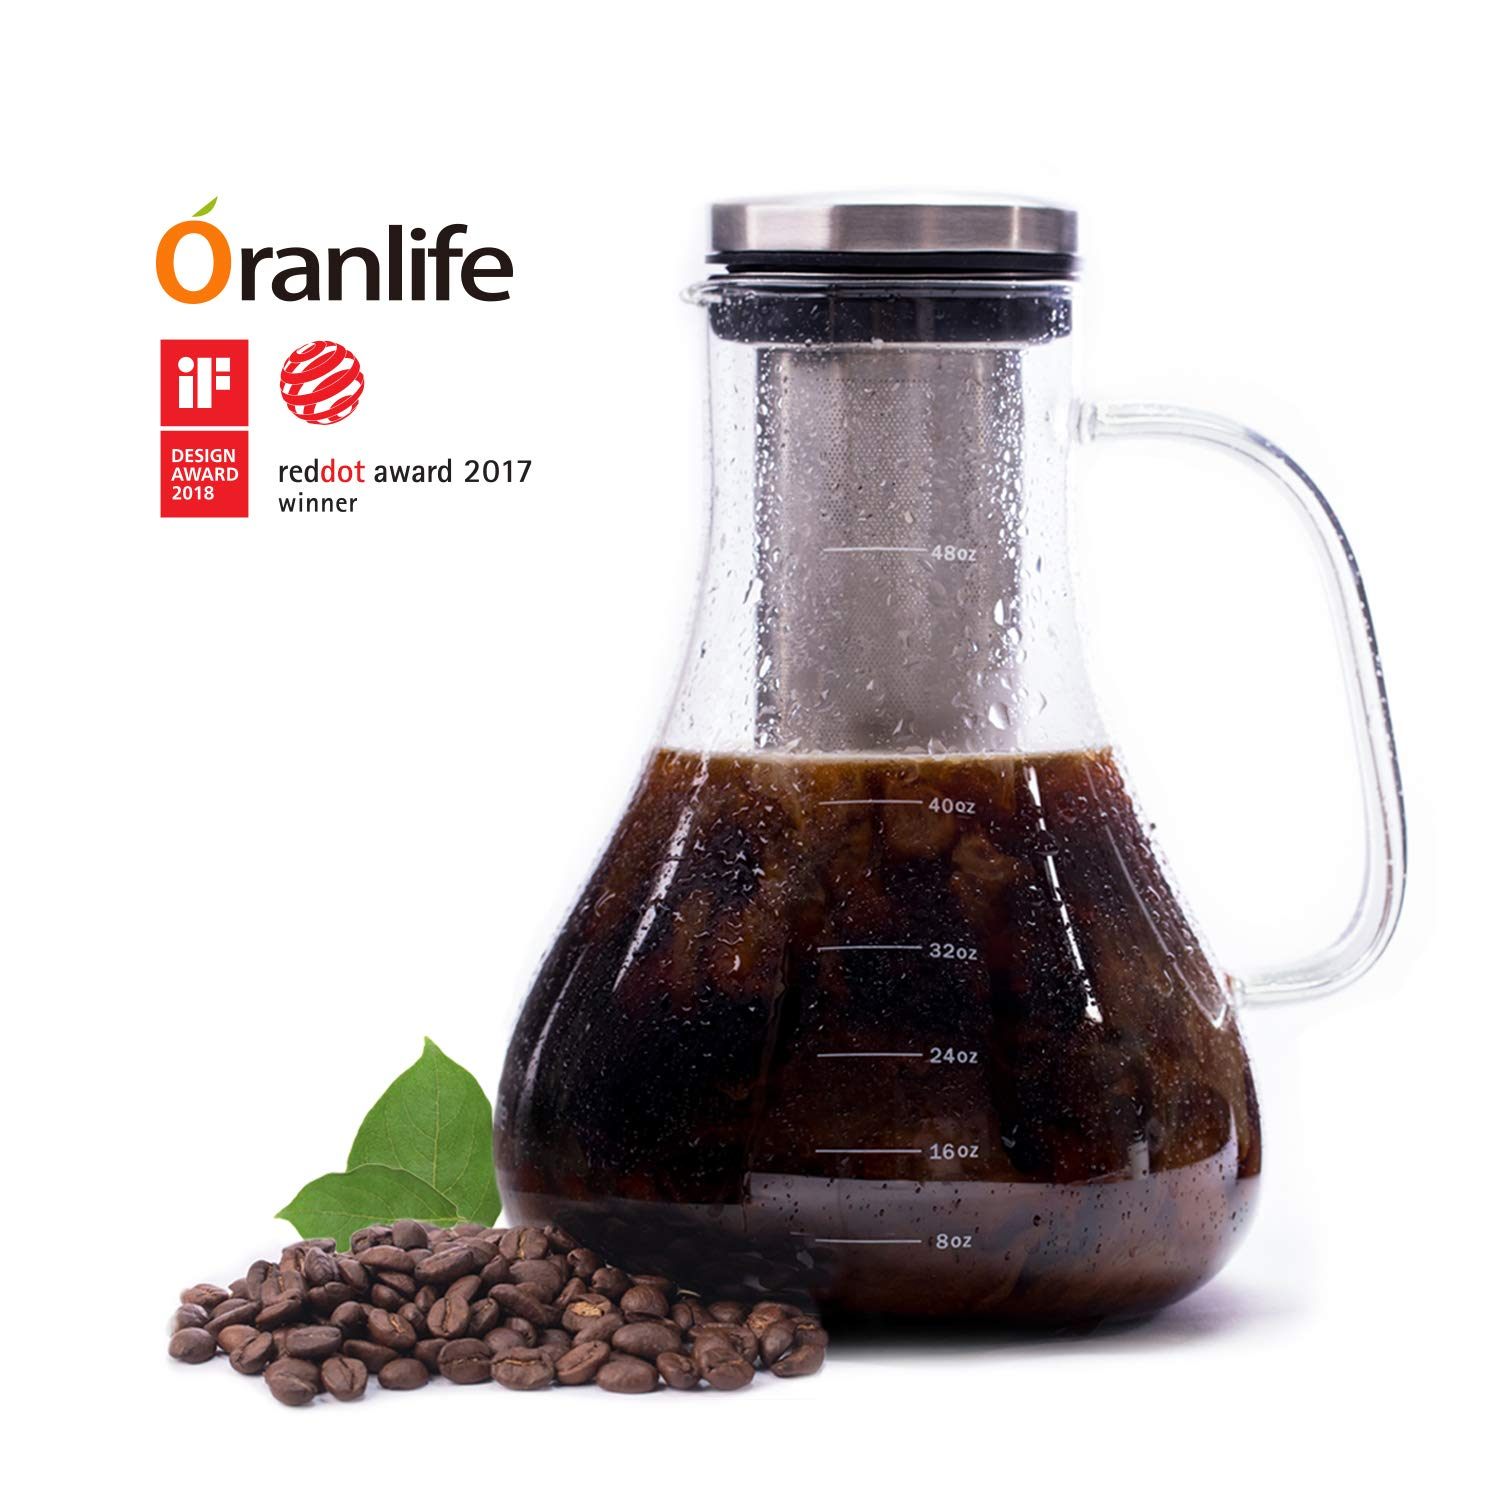 Cold Brew Bottle Coffee Maker Kit with Sleeve for Iced Coffee Tea Pitcher Glass Carafe with Family Edition Deep Removable Stainless Steel Filter and Airtight Lid Infuser Water Bottle 1.5 L 6 cup